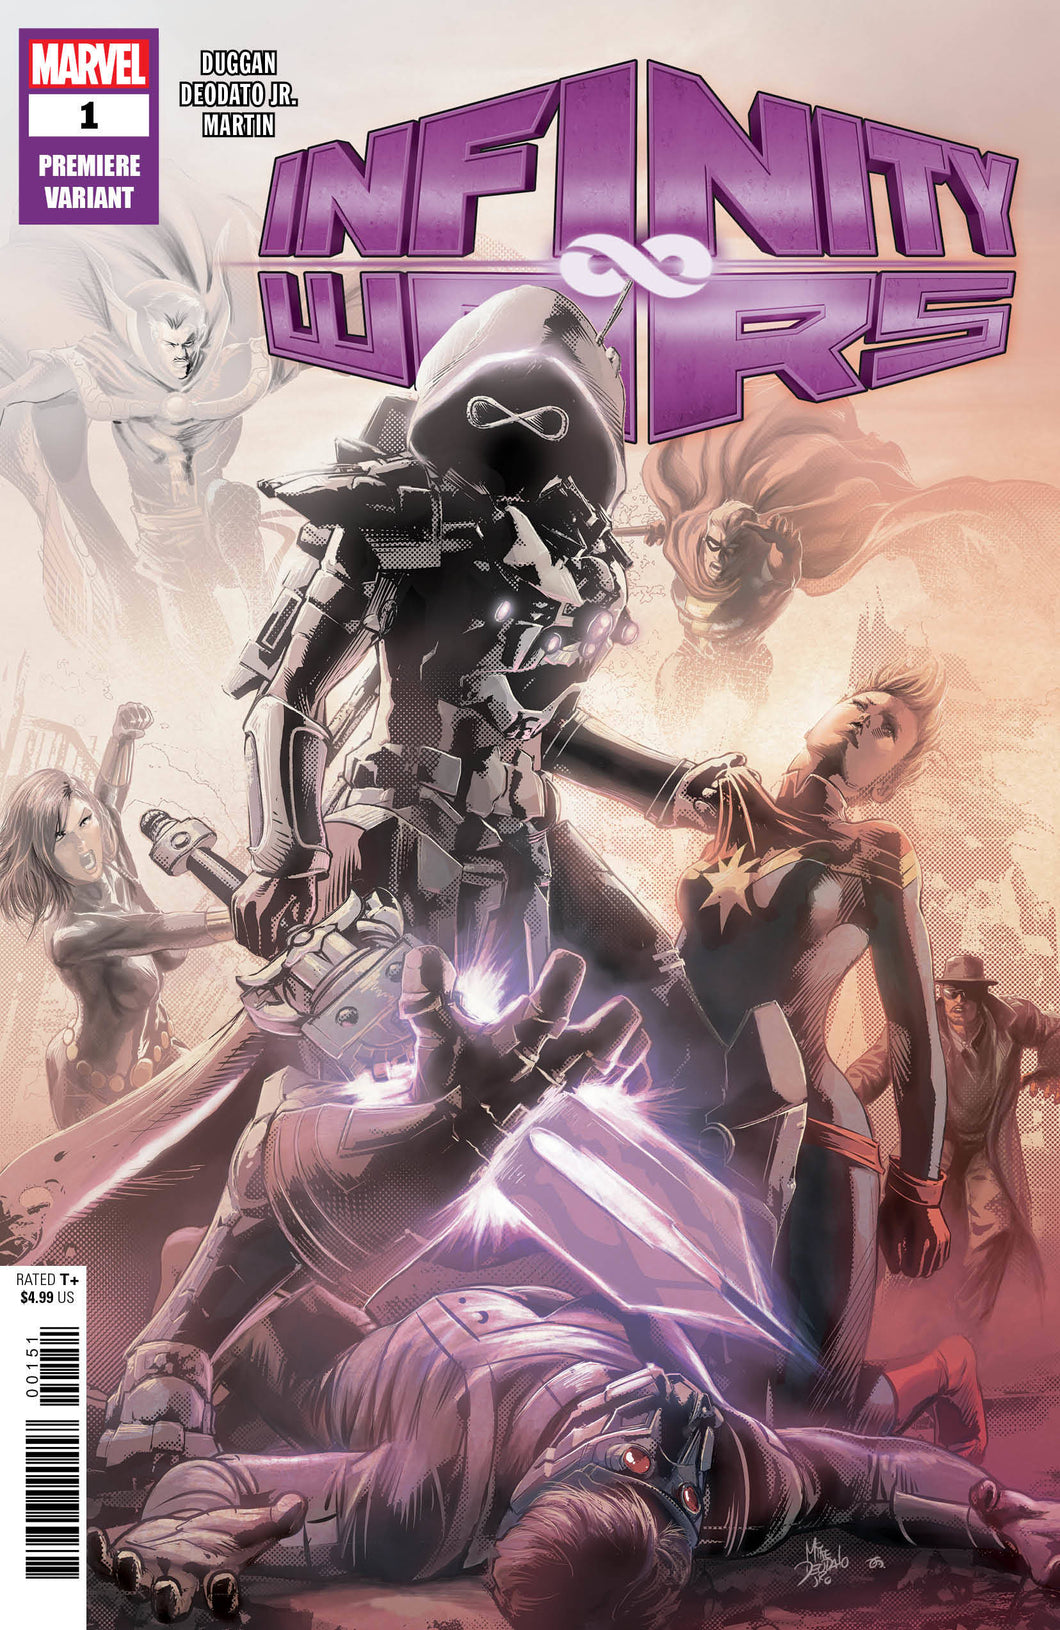 INFINITY WARS #1 (OF 6) DEODATO PREMIERE 2 PER STORE VARIANT  FOC 07/09